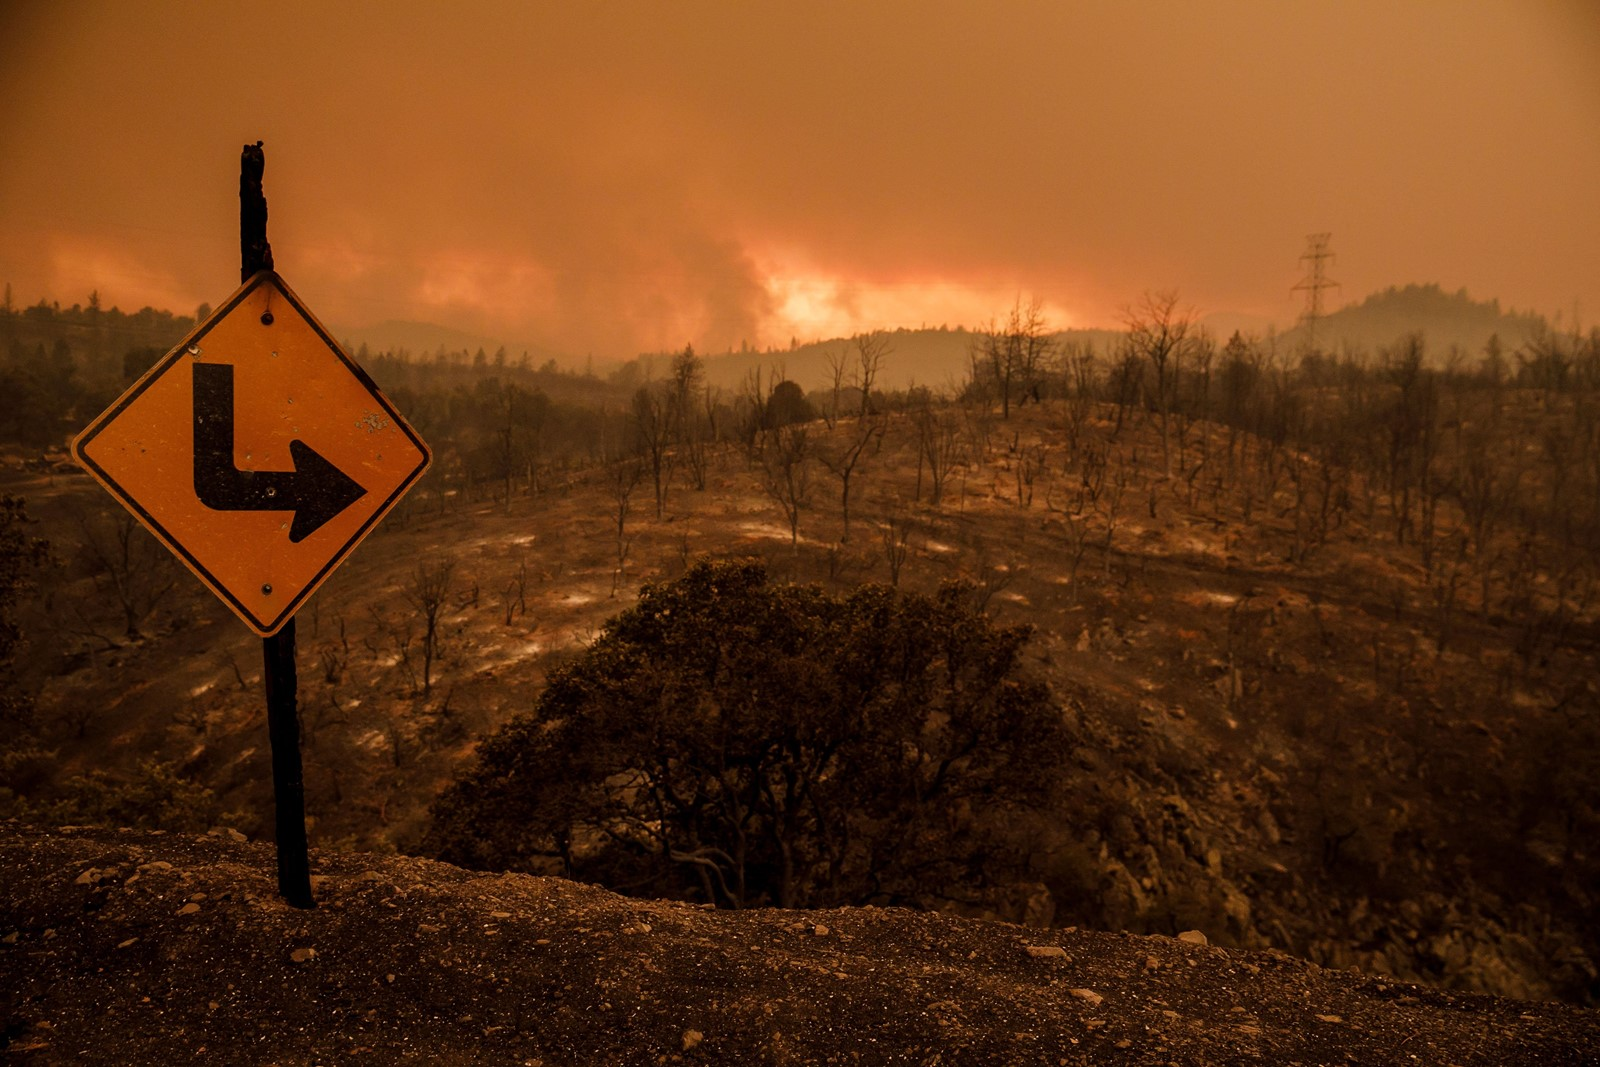 Fire destruction in the rural areas outside Redding, California. Last week's fire vortex adds a layer of unpredictability and danger. — Photograph: Marcus Yam/Los Angeles Times.